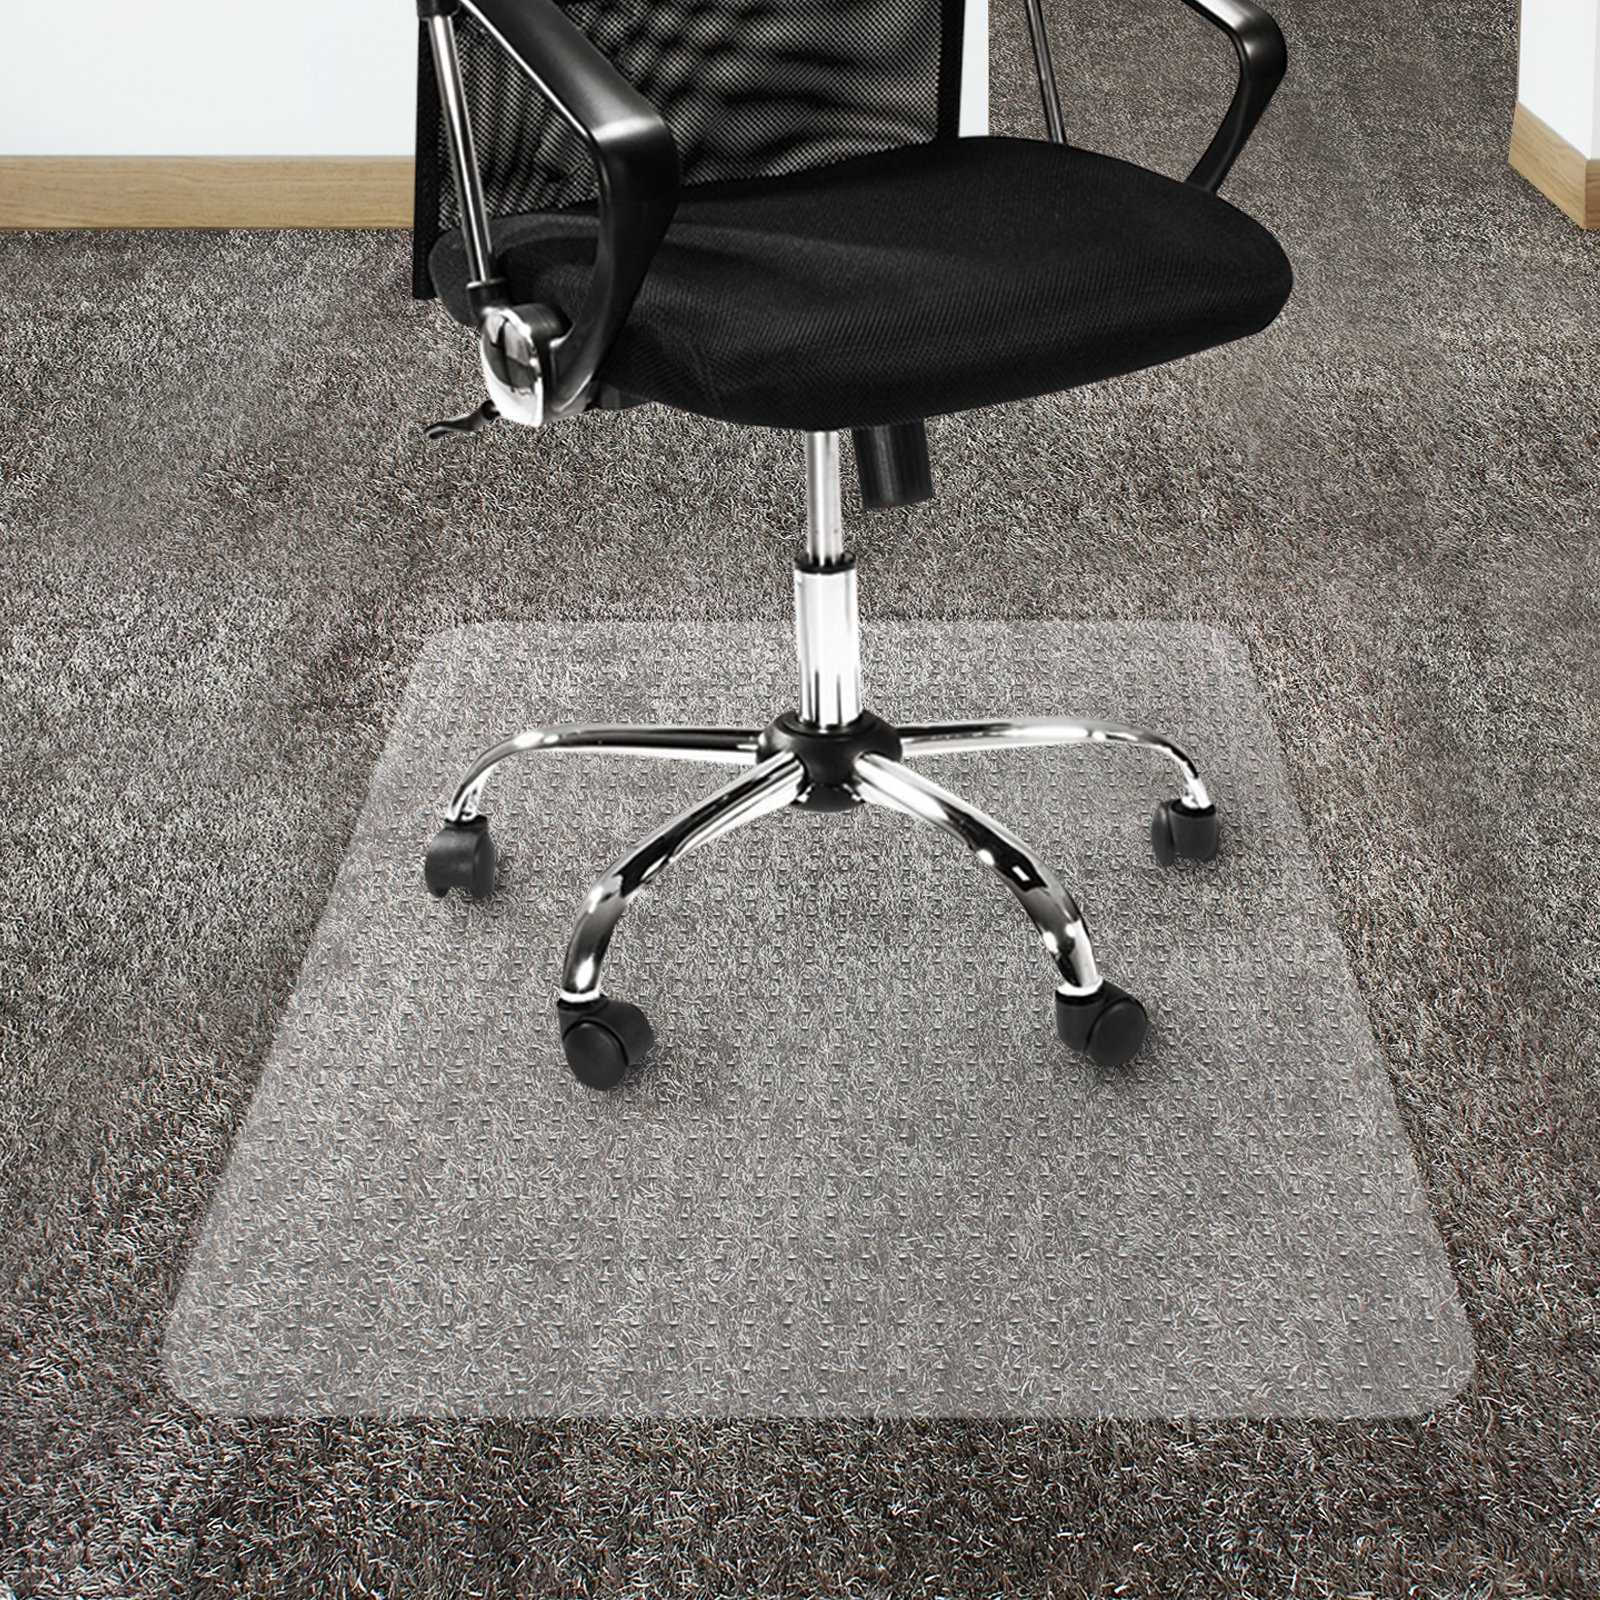 Office Marshal Polycarbonate Chair Mat for High Pile Carpet Floors, 36'' x 48'' - Multiple Sizes - Clear, Studded, Carpet Floor Protection Mat